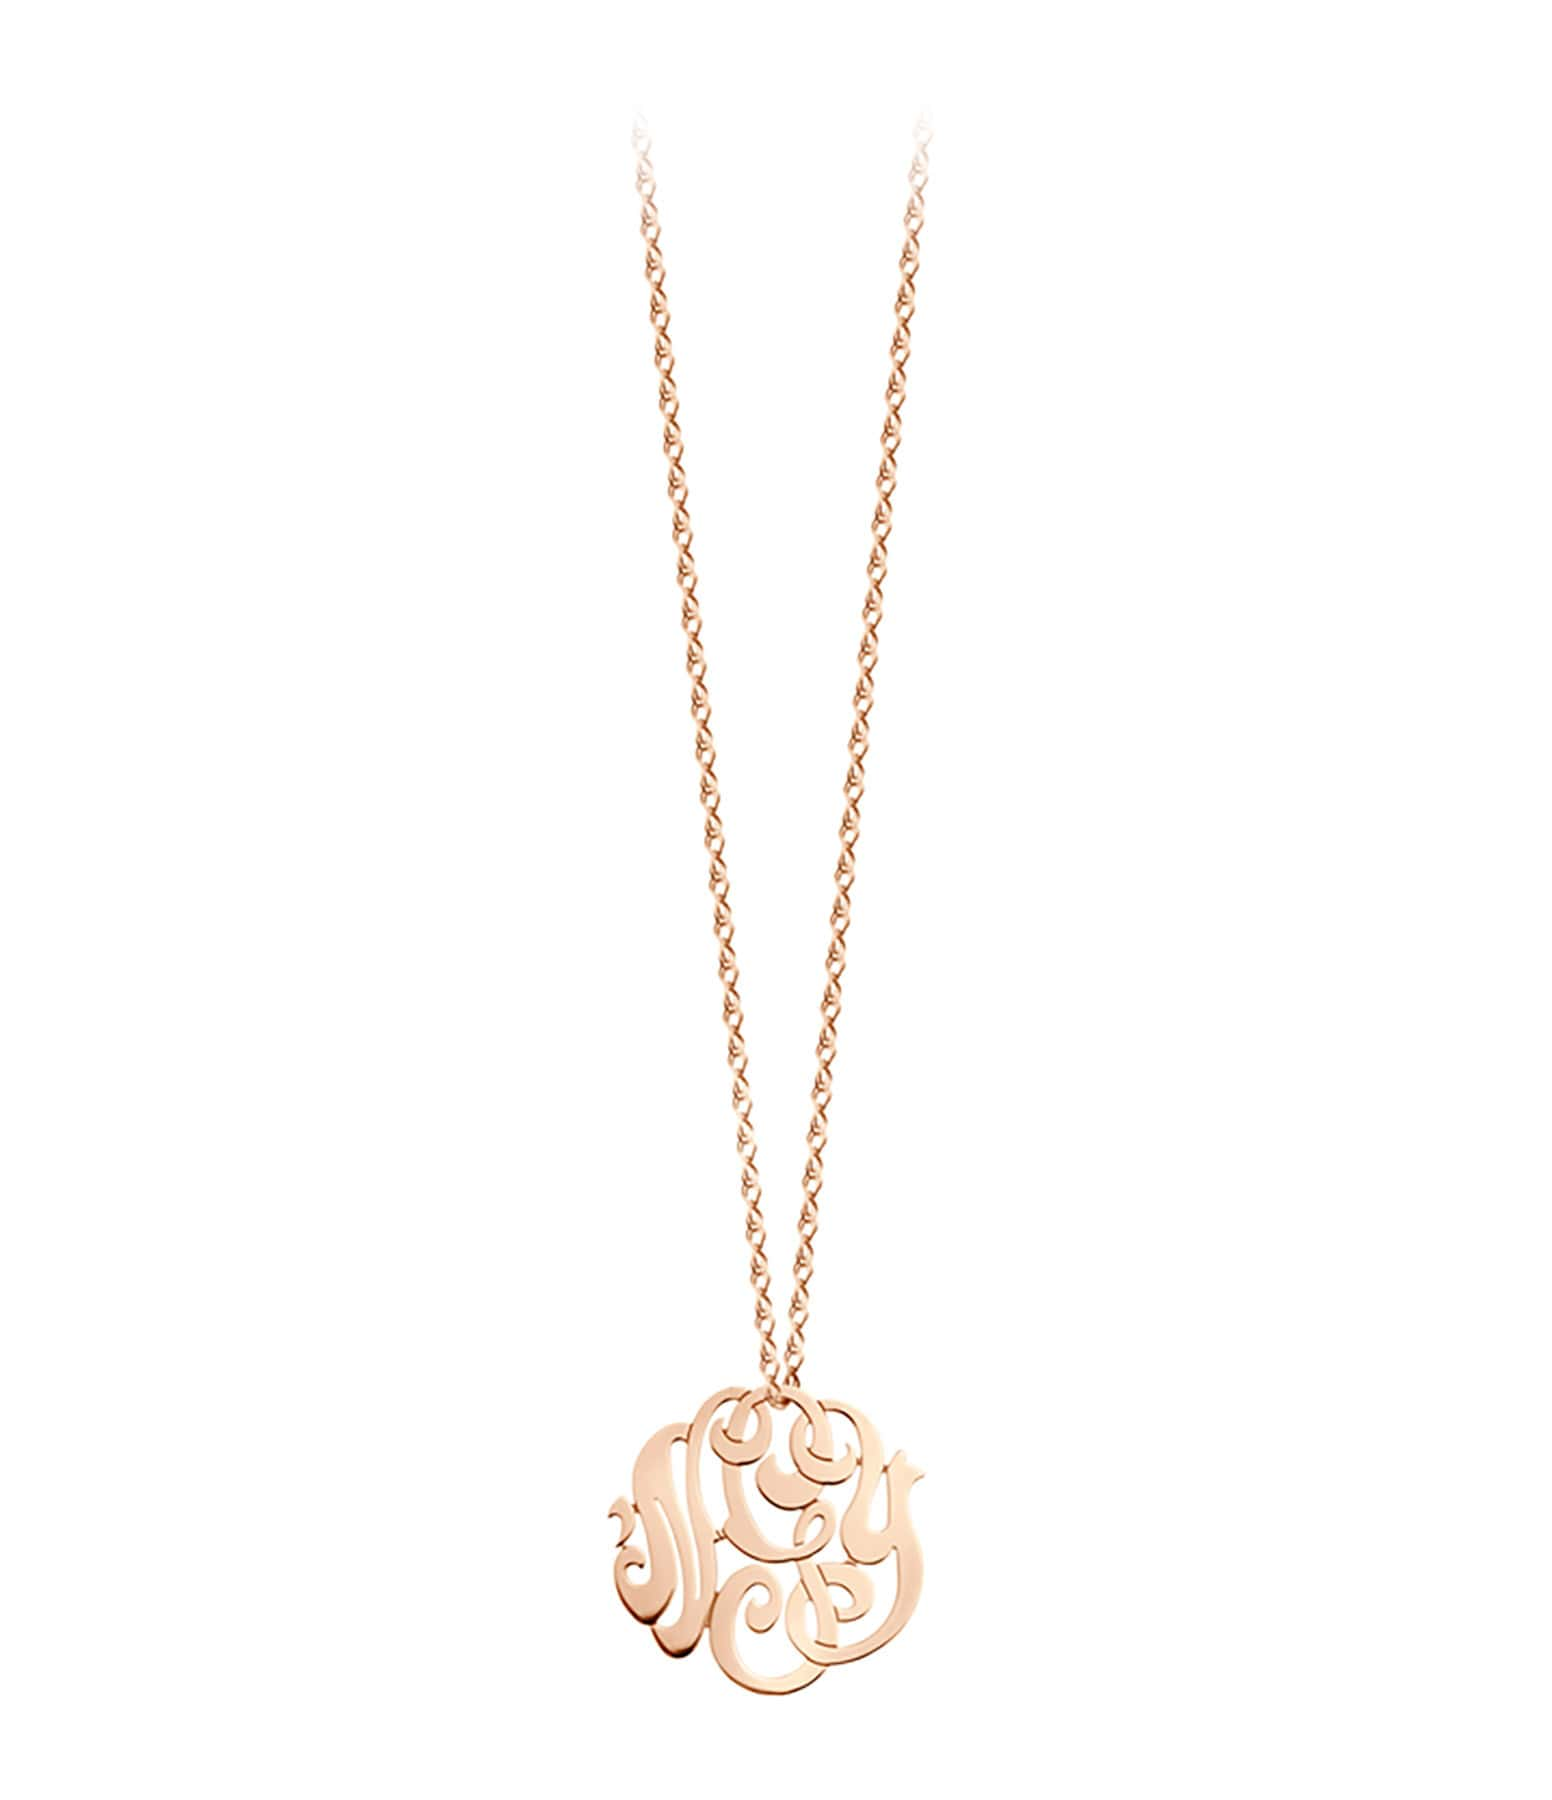 Collier baby monogramme nGy